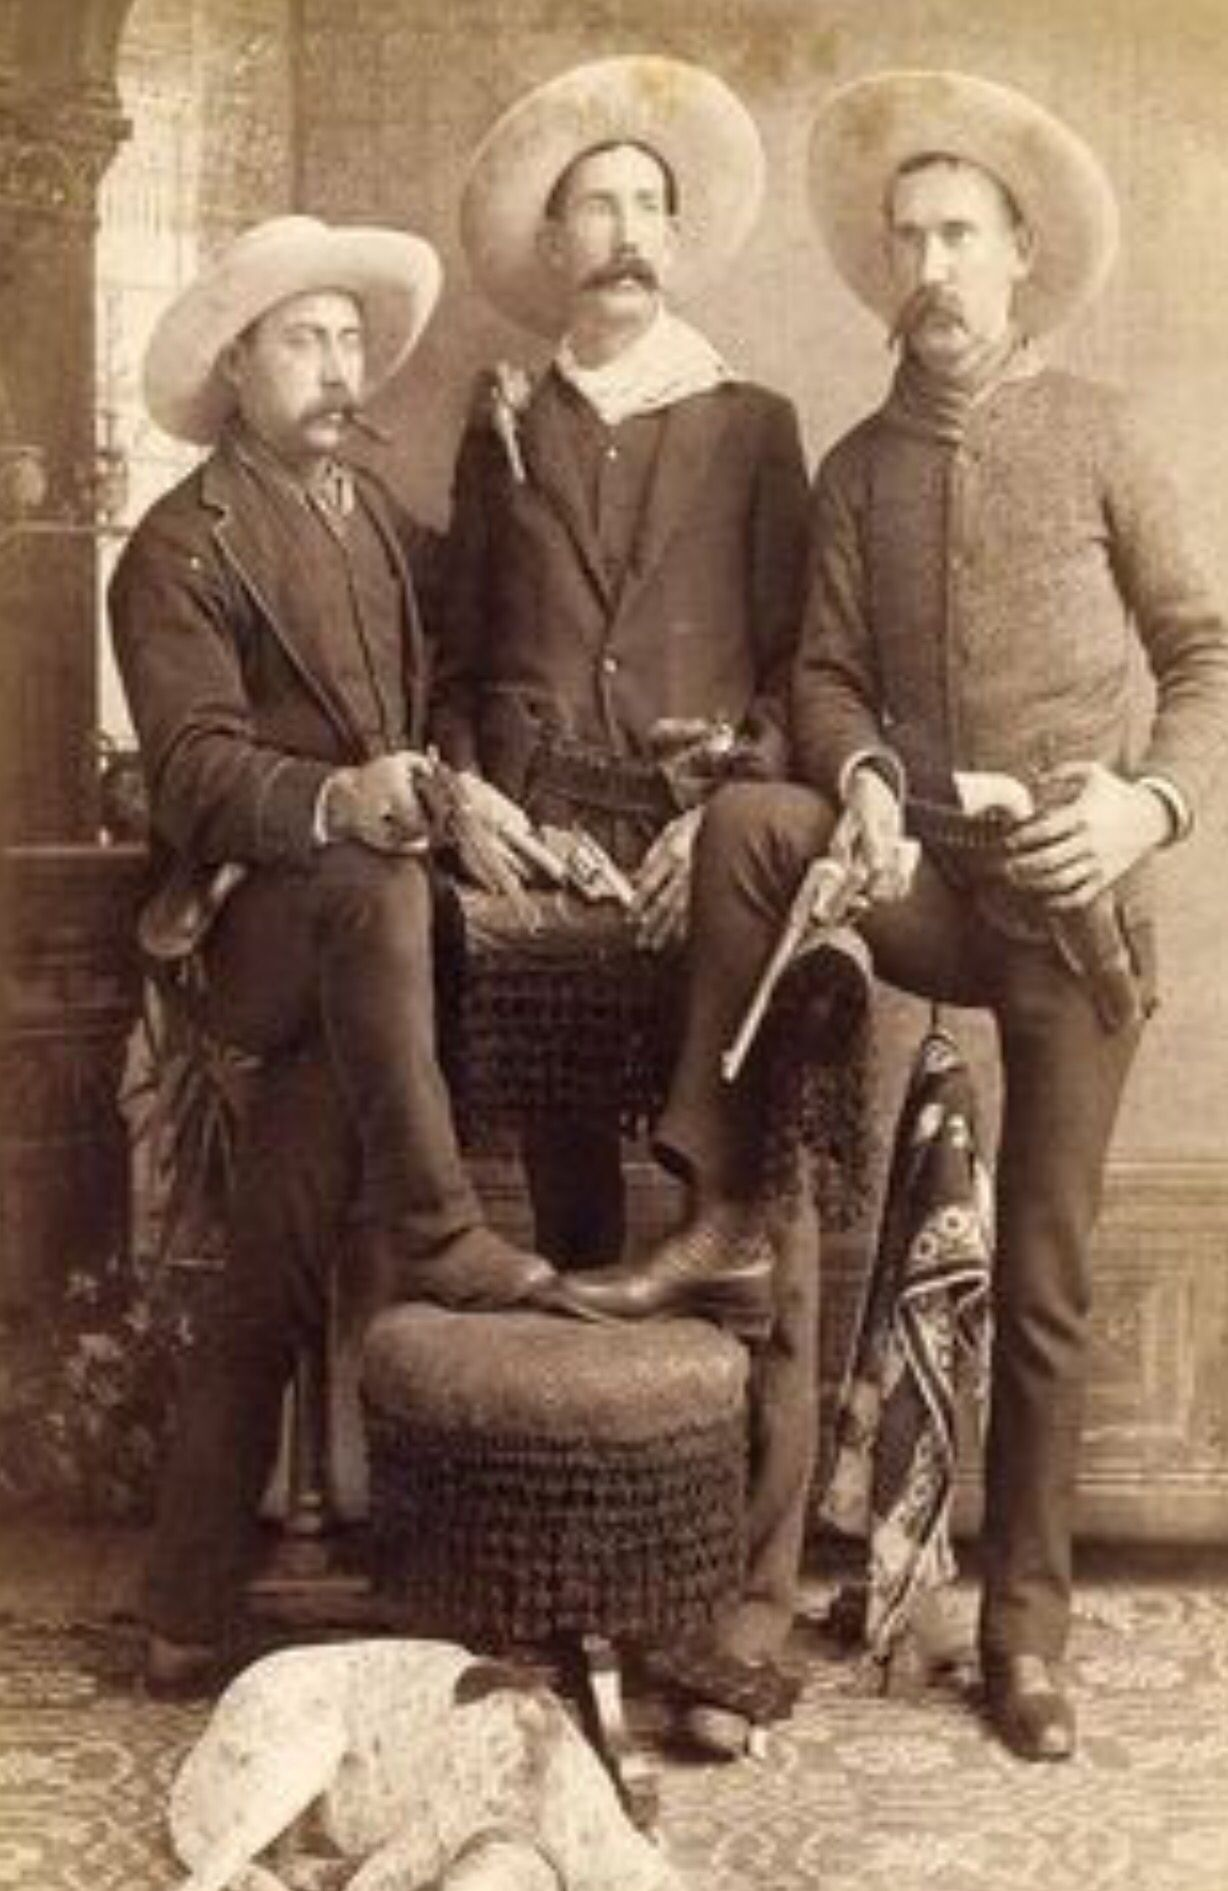 Wild West With Images Old West Outlaws Old West Old West Photos